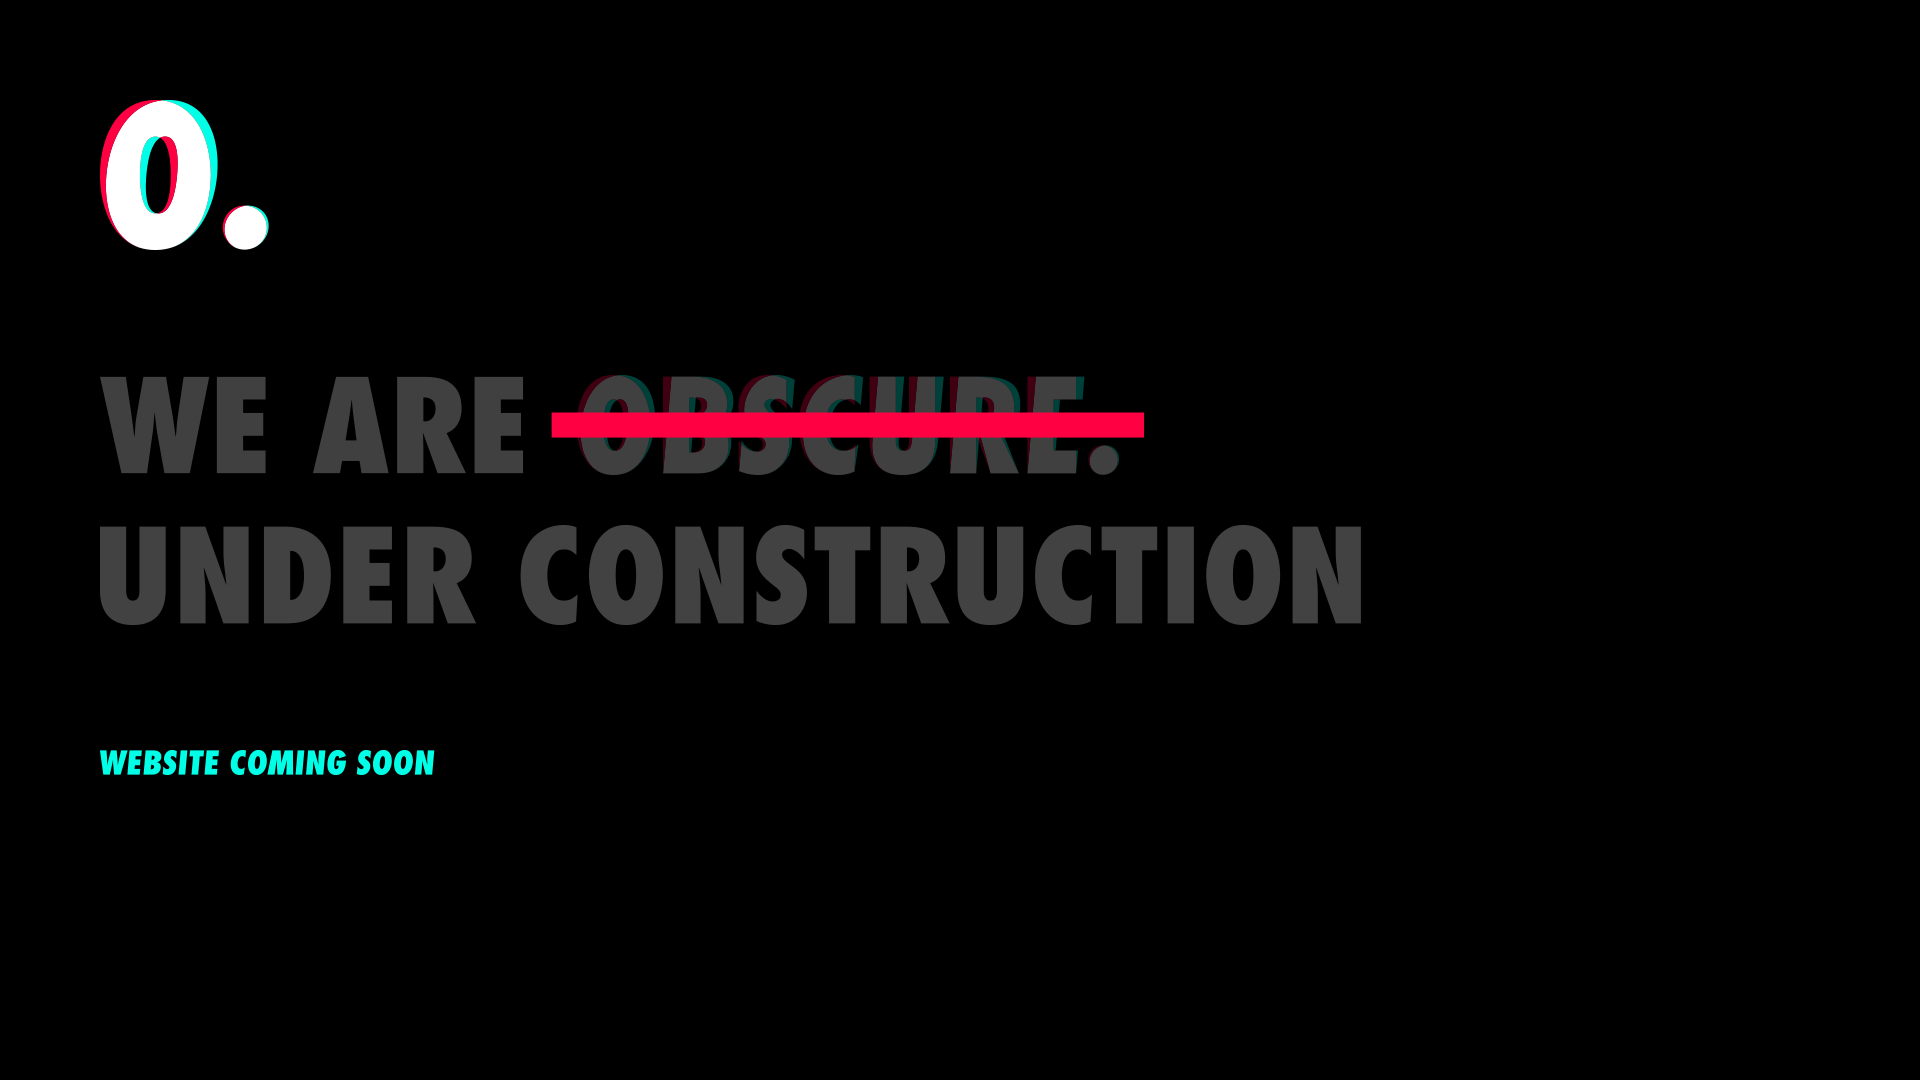 We are under construction